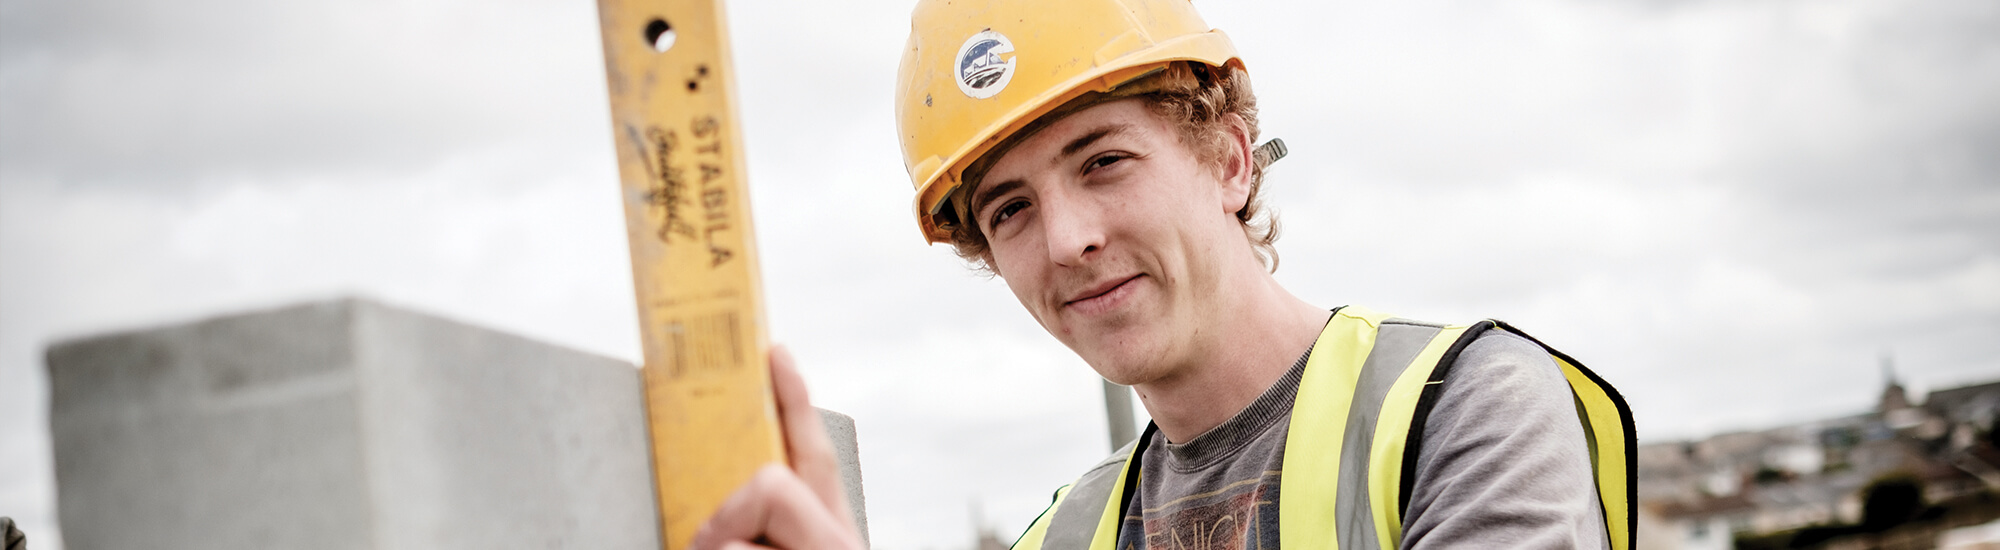 benefits of apprenticeship - What are the benefits to you?